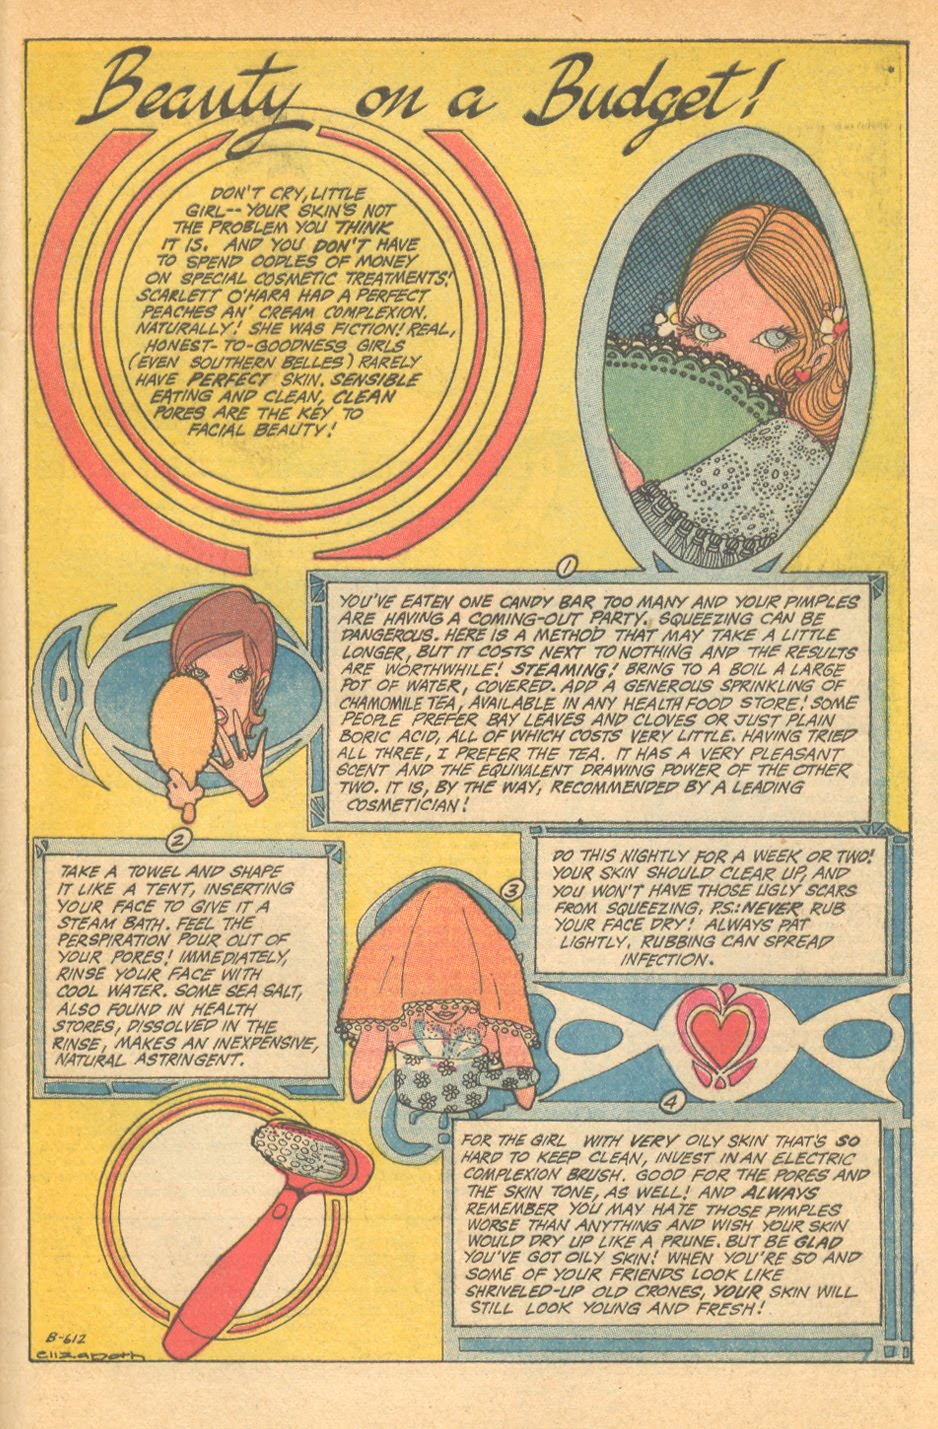 """""""Beauty on a Budget""""  Falling in Love  #119 (November 1970)"""